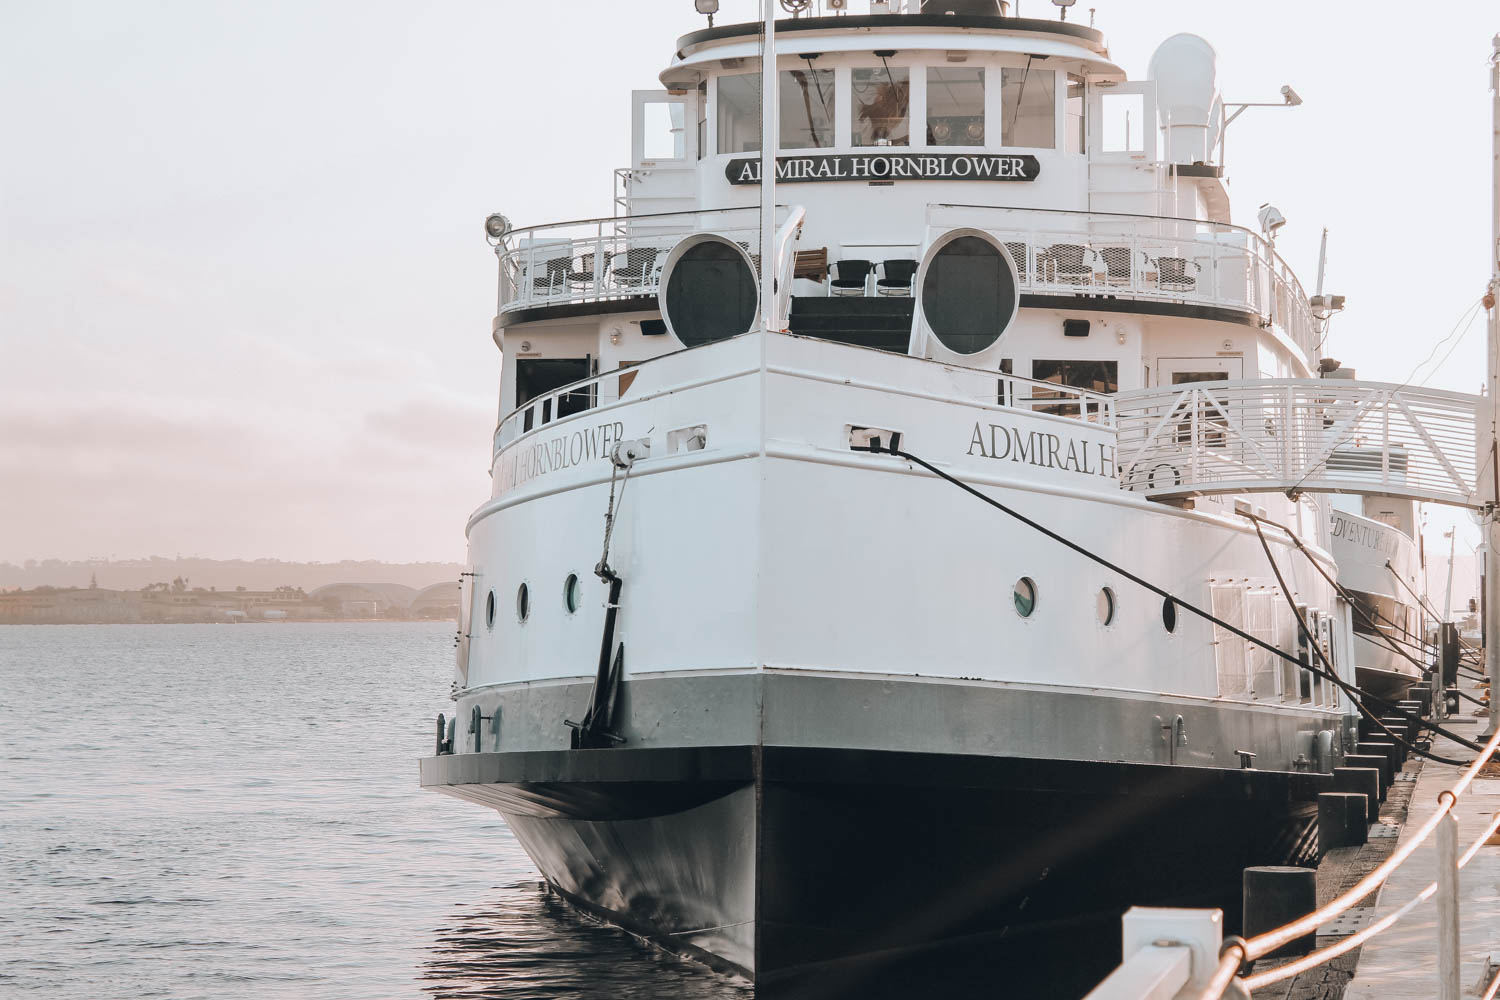 travel-guide-san-diego-recommendations-hornblower-cruise2